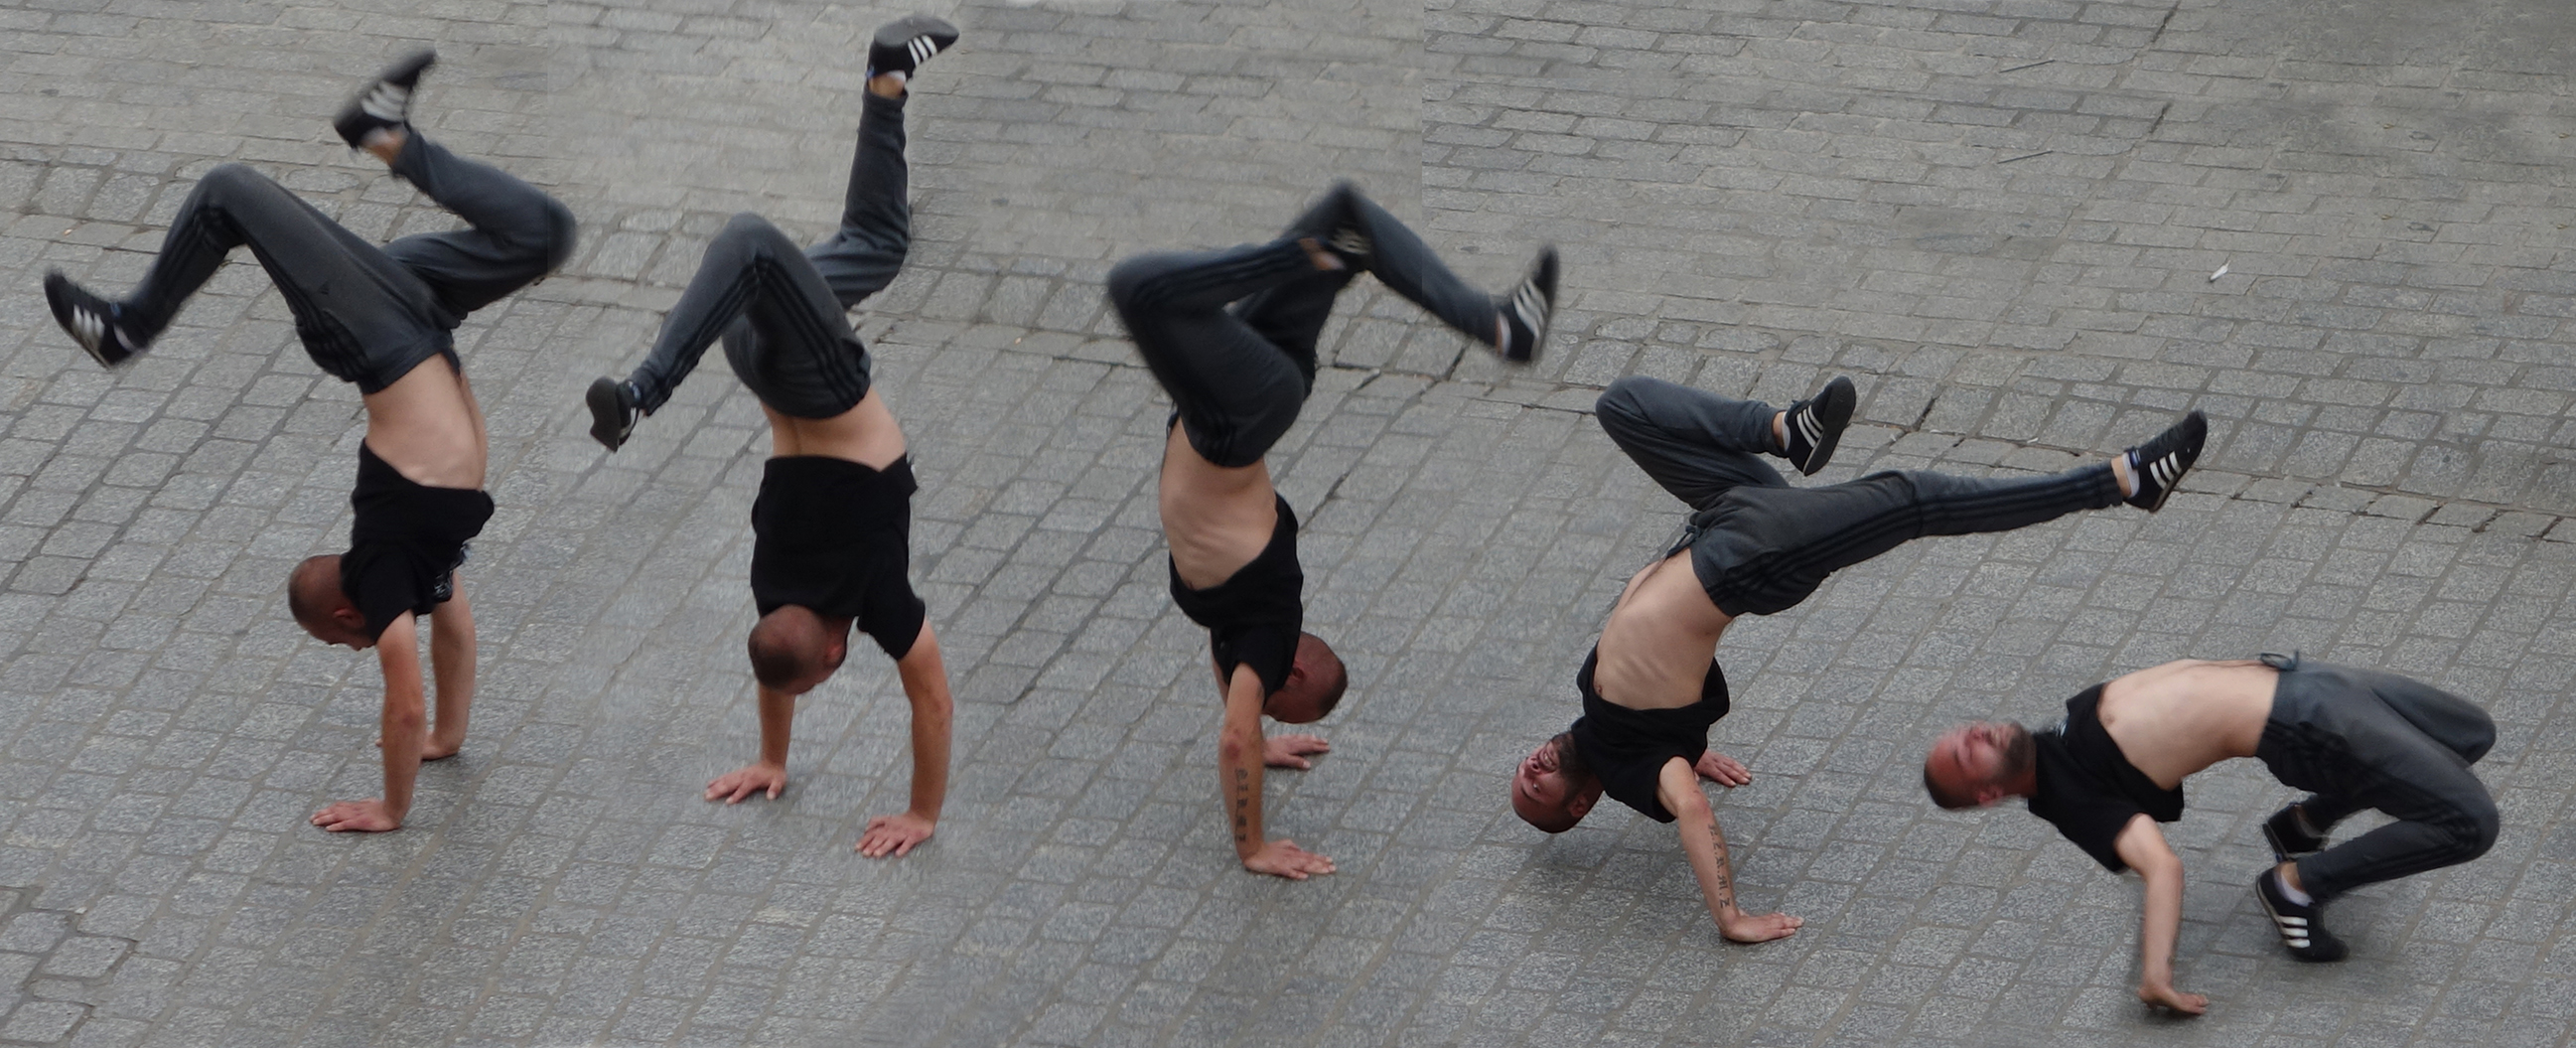 Krakow, breakdancers